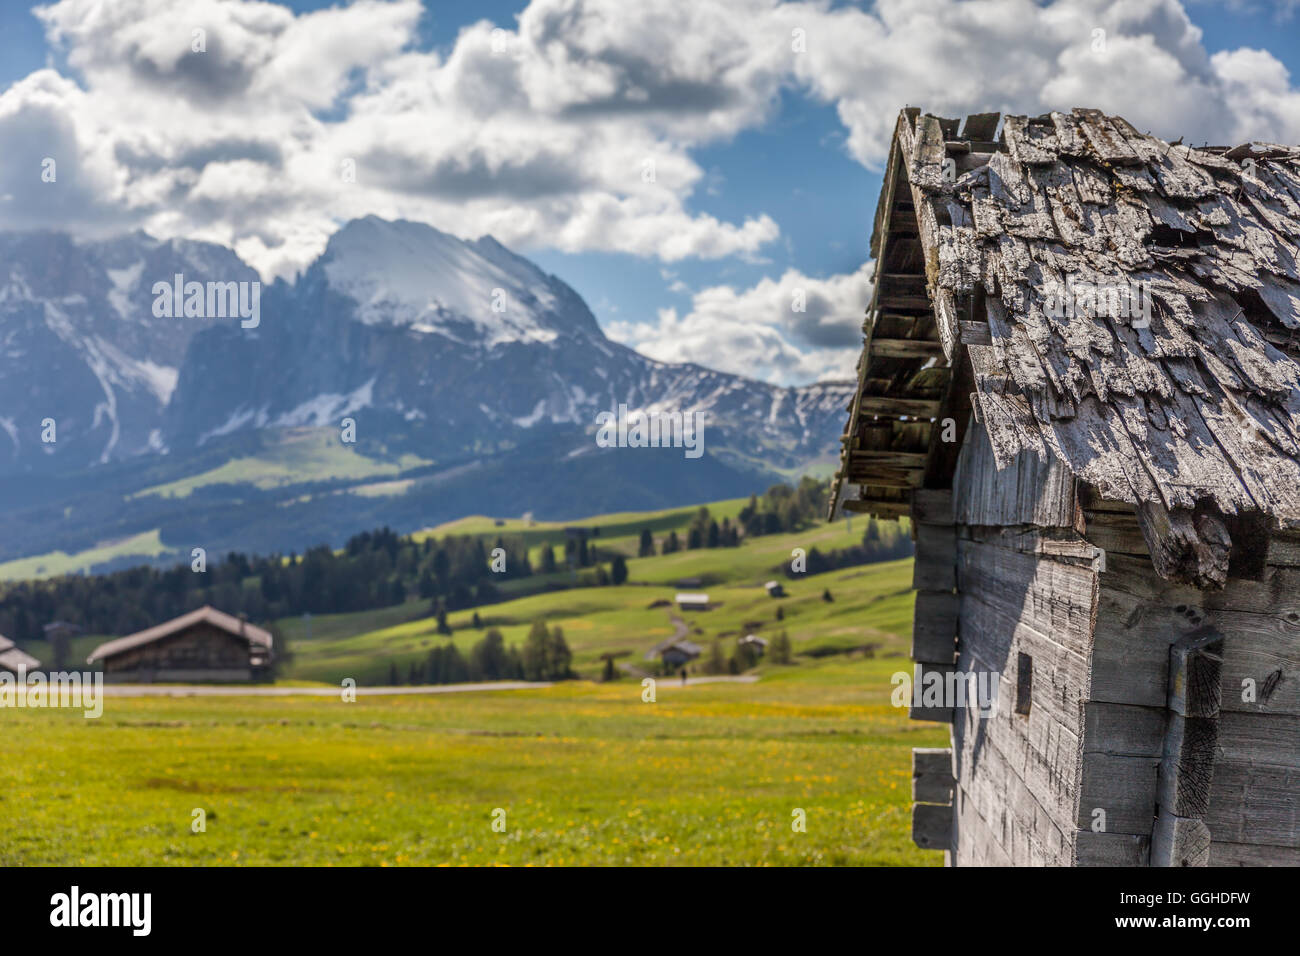 geography / travel, Italy, South Tyrol, Alpine hut on the Seiser mountain pasture, view to the Plattkofel, Additional - Stock Image